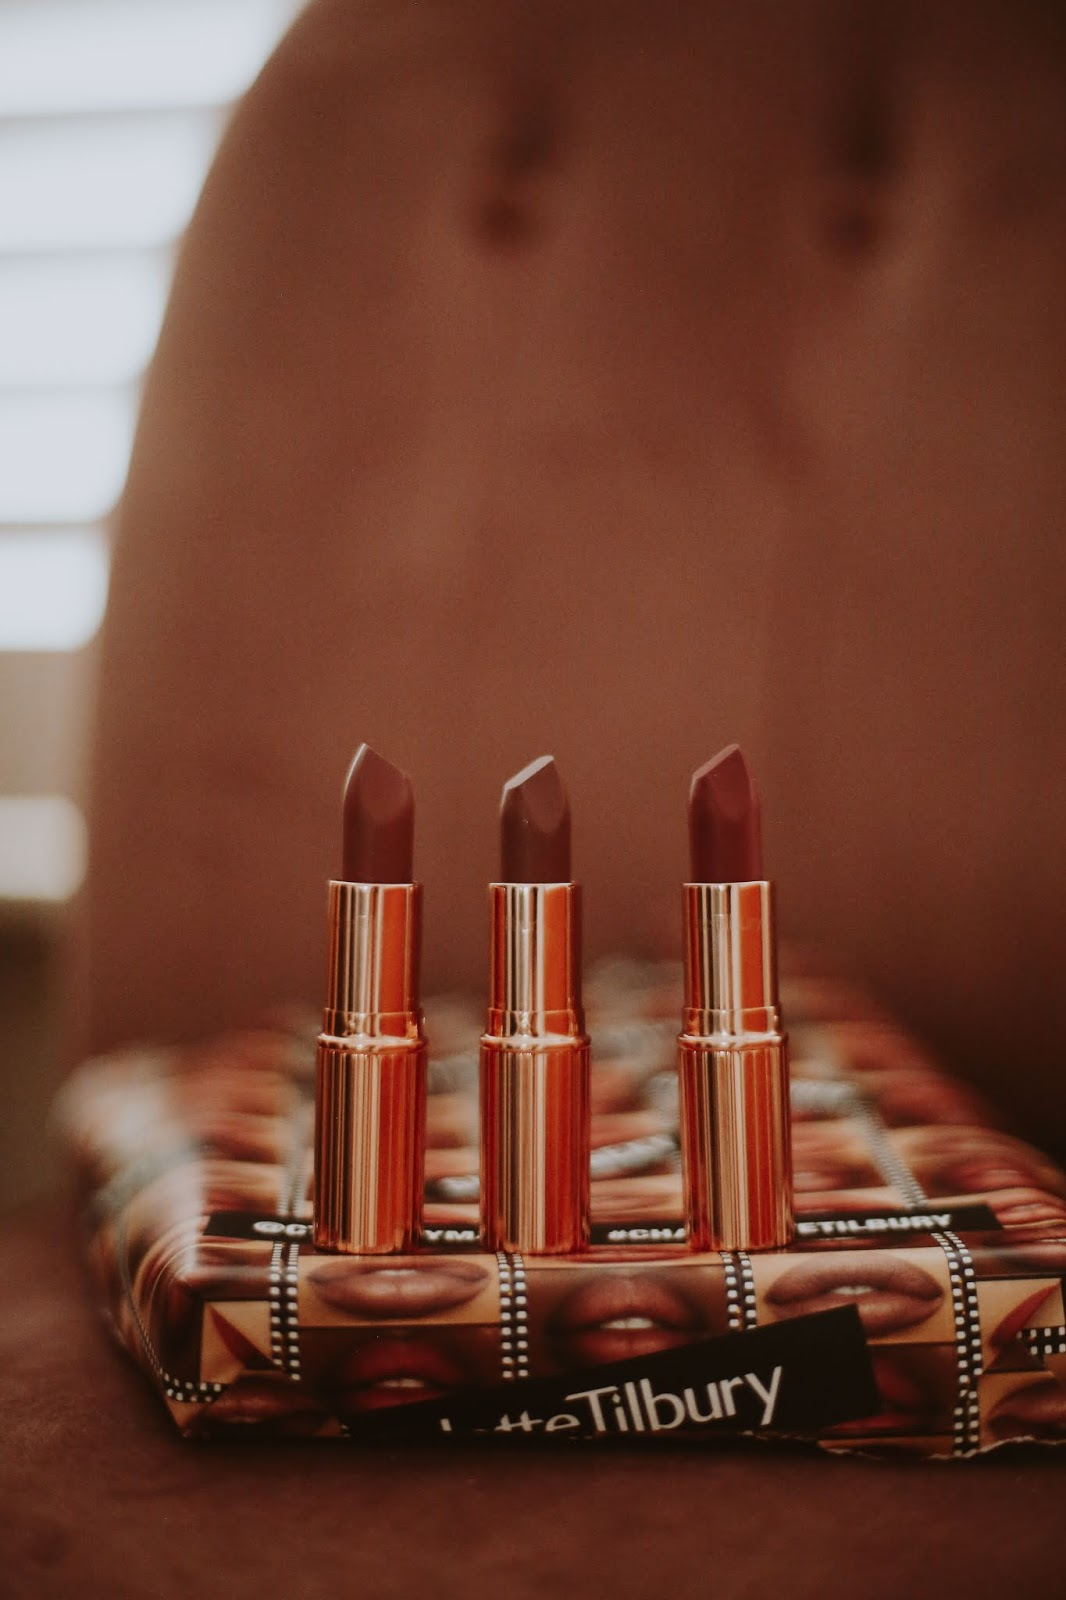 Charlotte Tilbury Supermodel Lipsticks Review